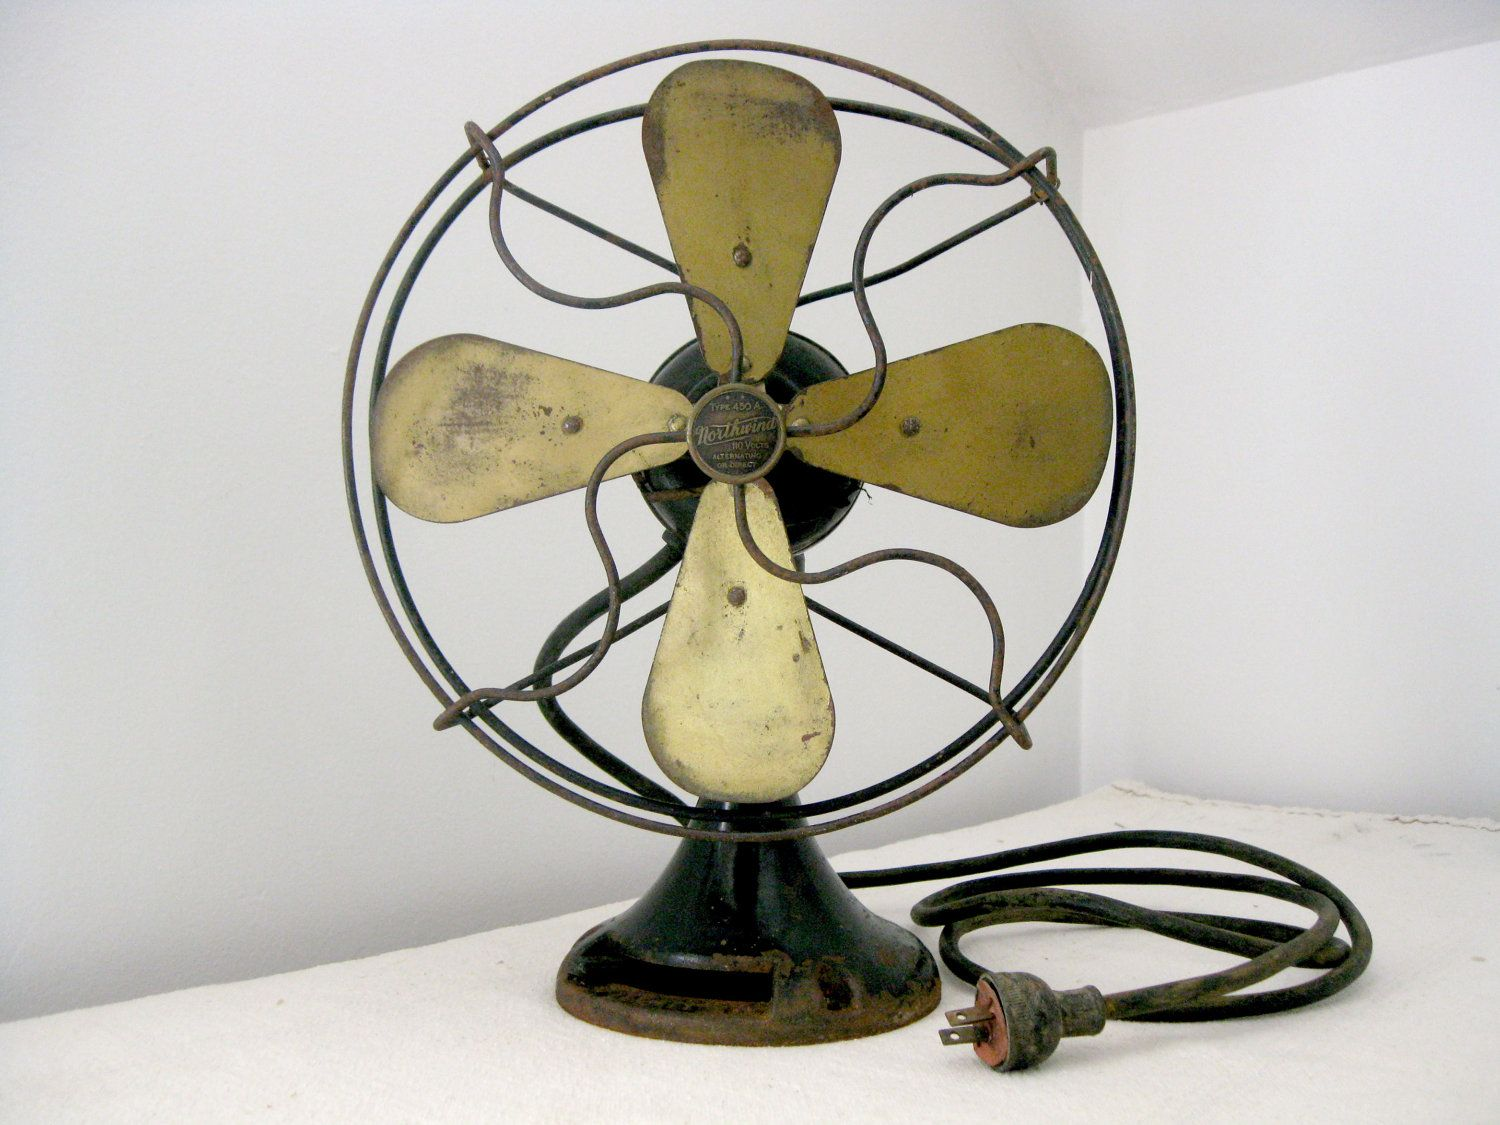 Antique Desk Fan - Antique Desk Fan Antique Furniture